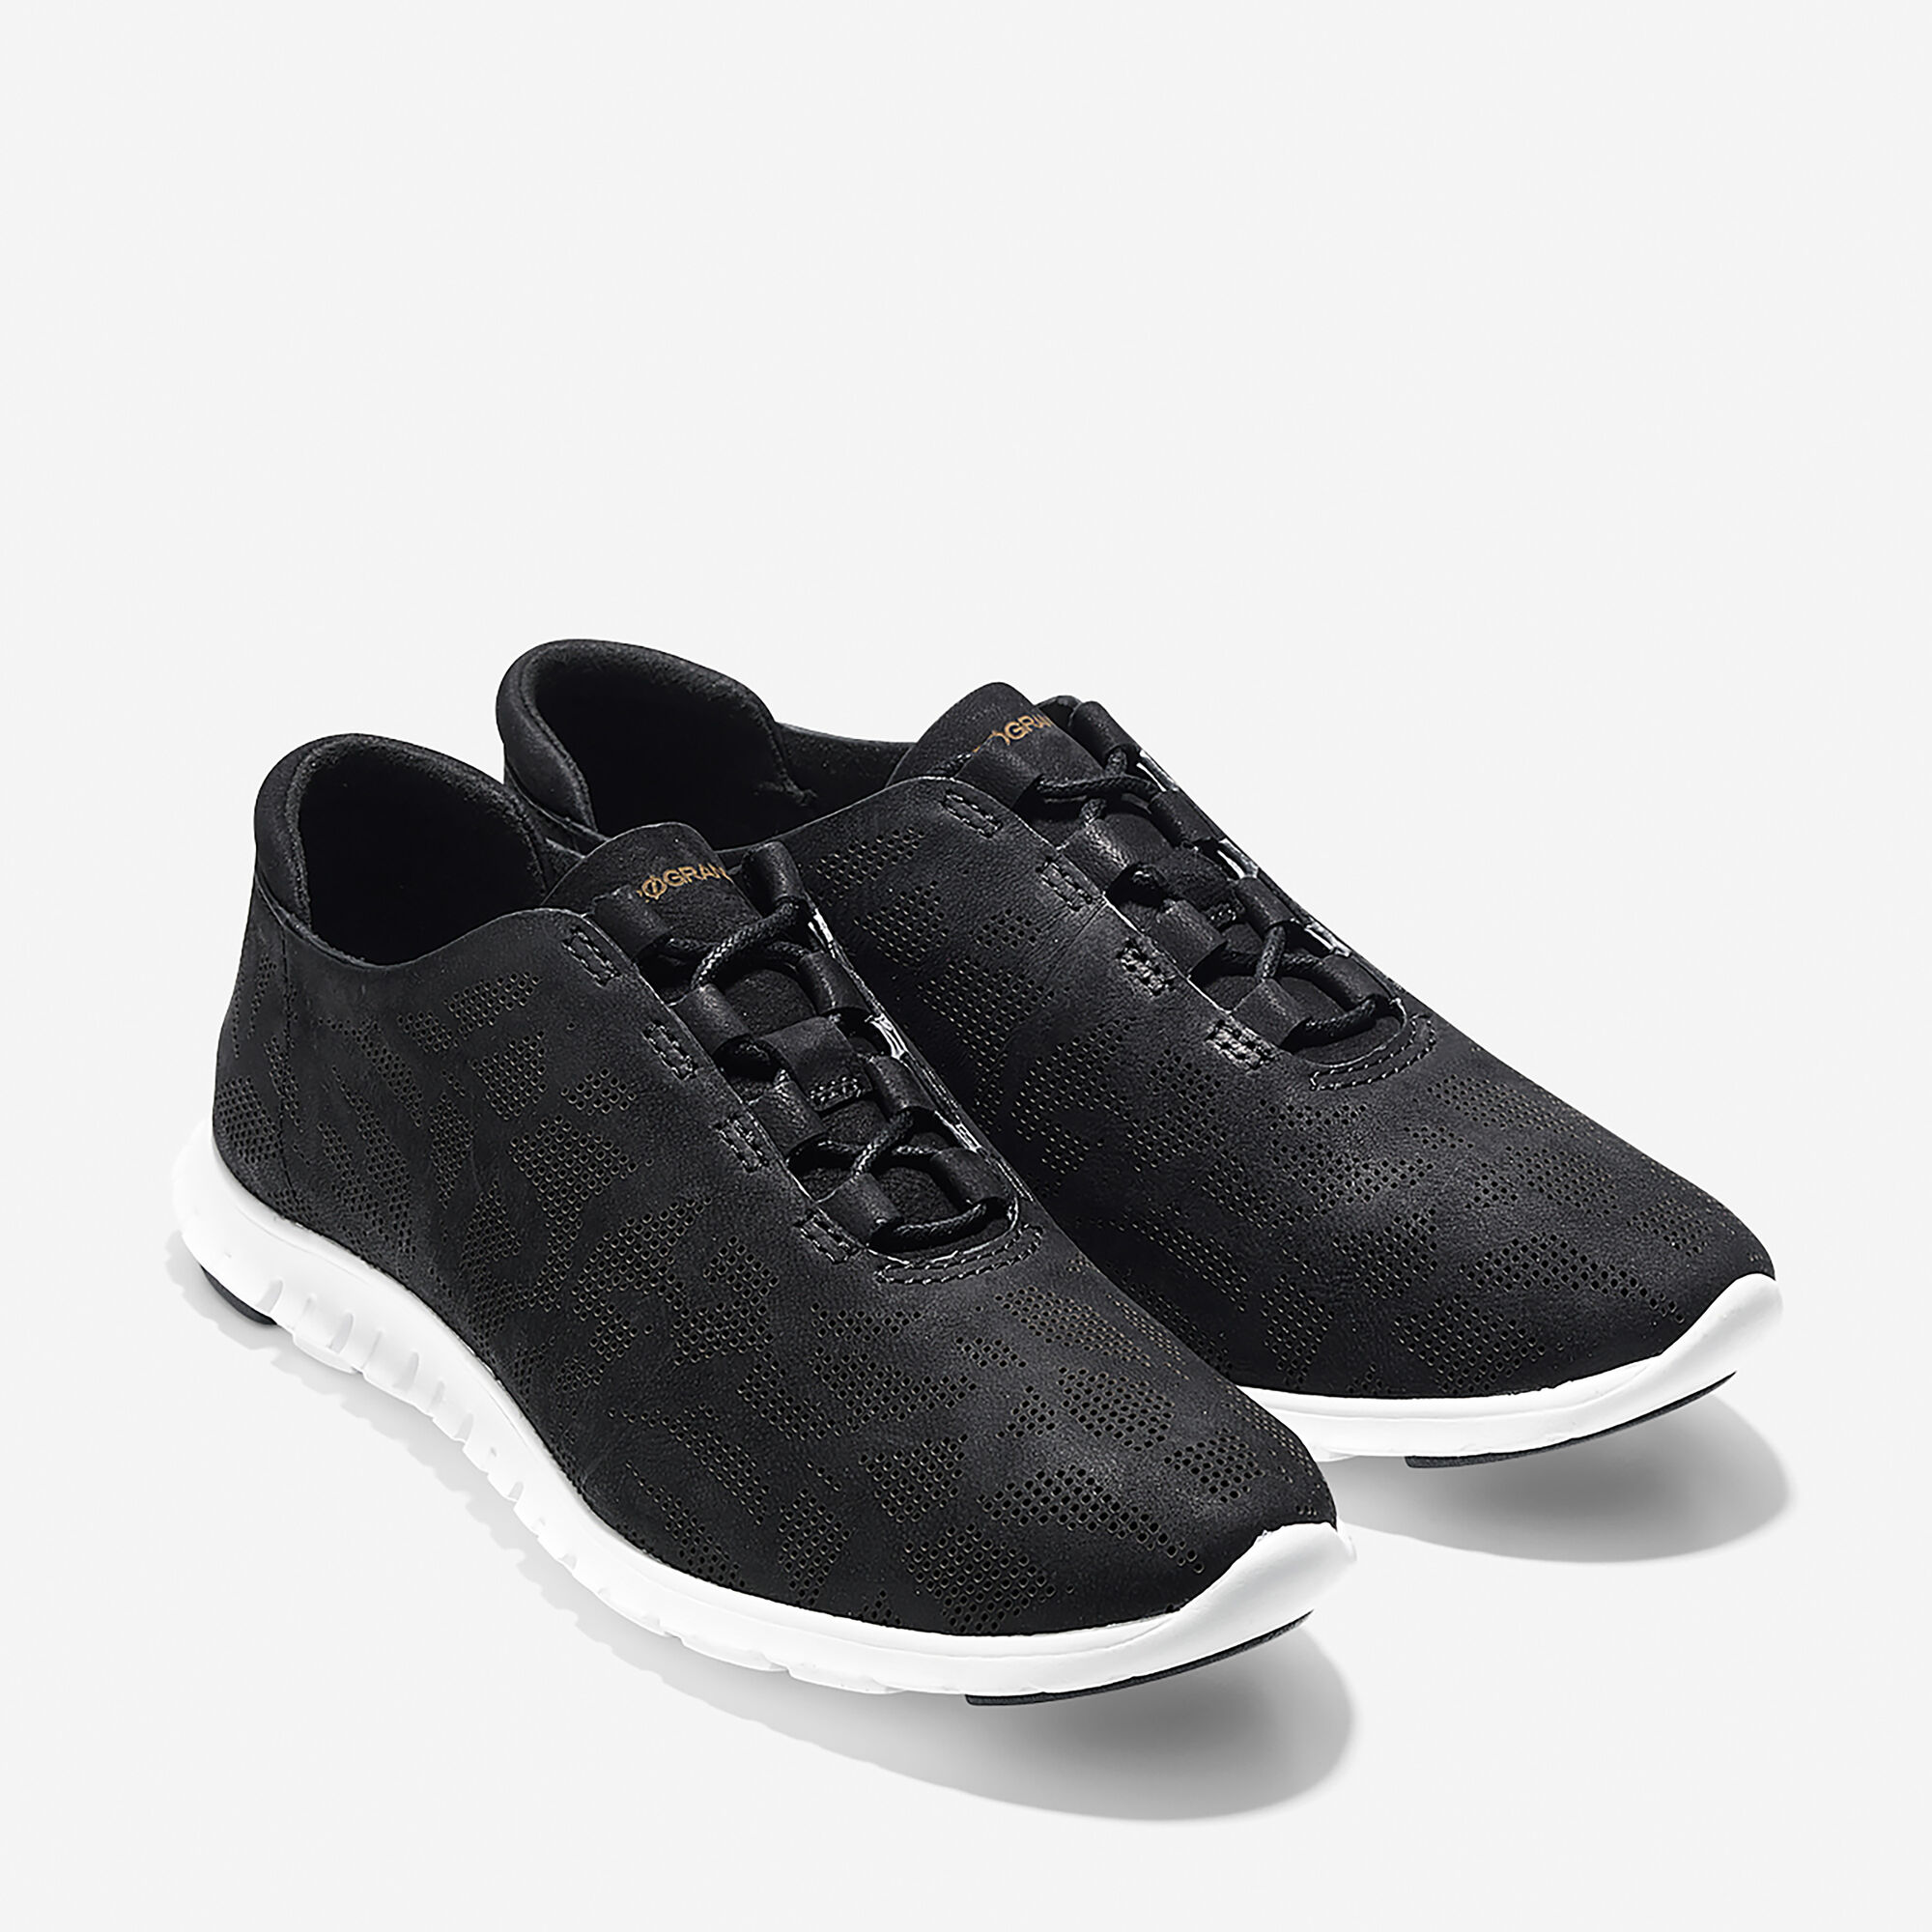 new products a3598 3a5da ... ZERØGRAND Perforated Trainer ...